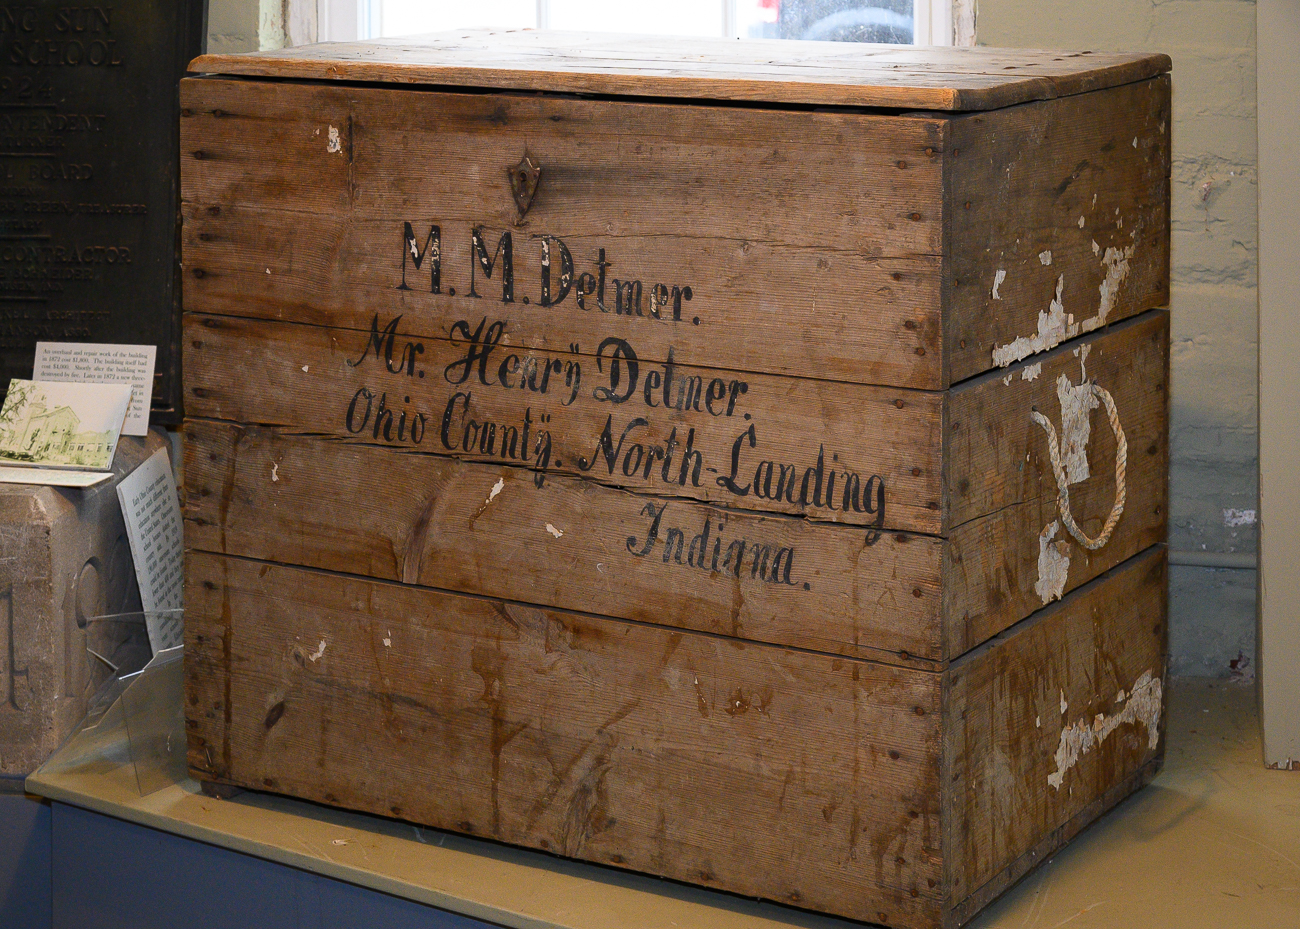 A chest from around 1845 used by the Detmer family. The Detmers were German immigrants who settled in Rising Sun. / Image: Phil Armstrong, Cincinnati Refined // Published: 1.7.20